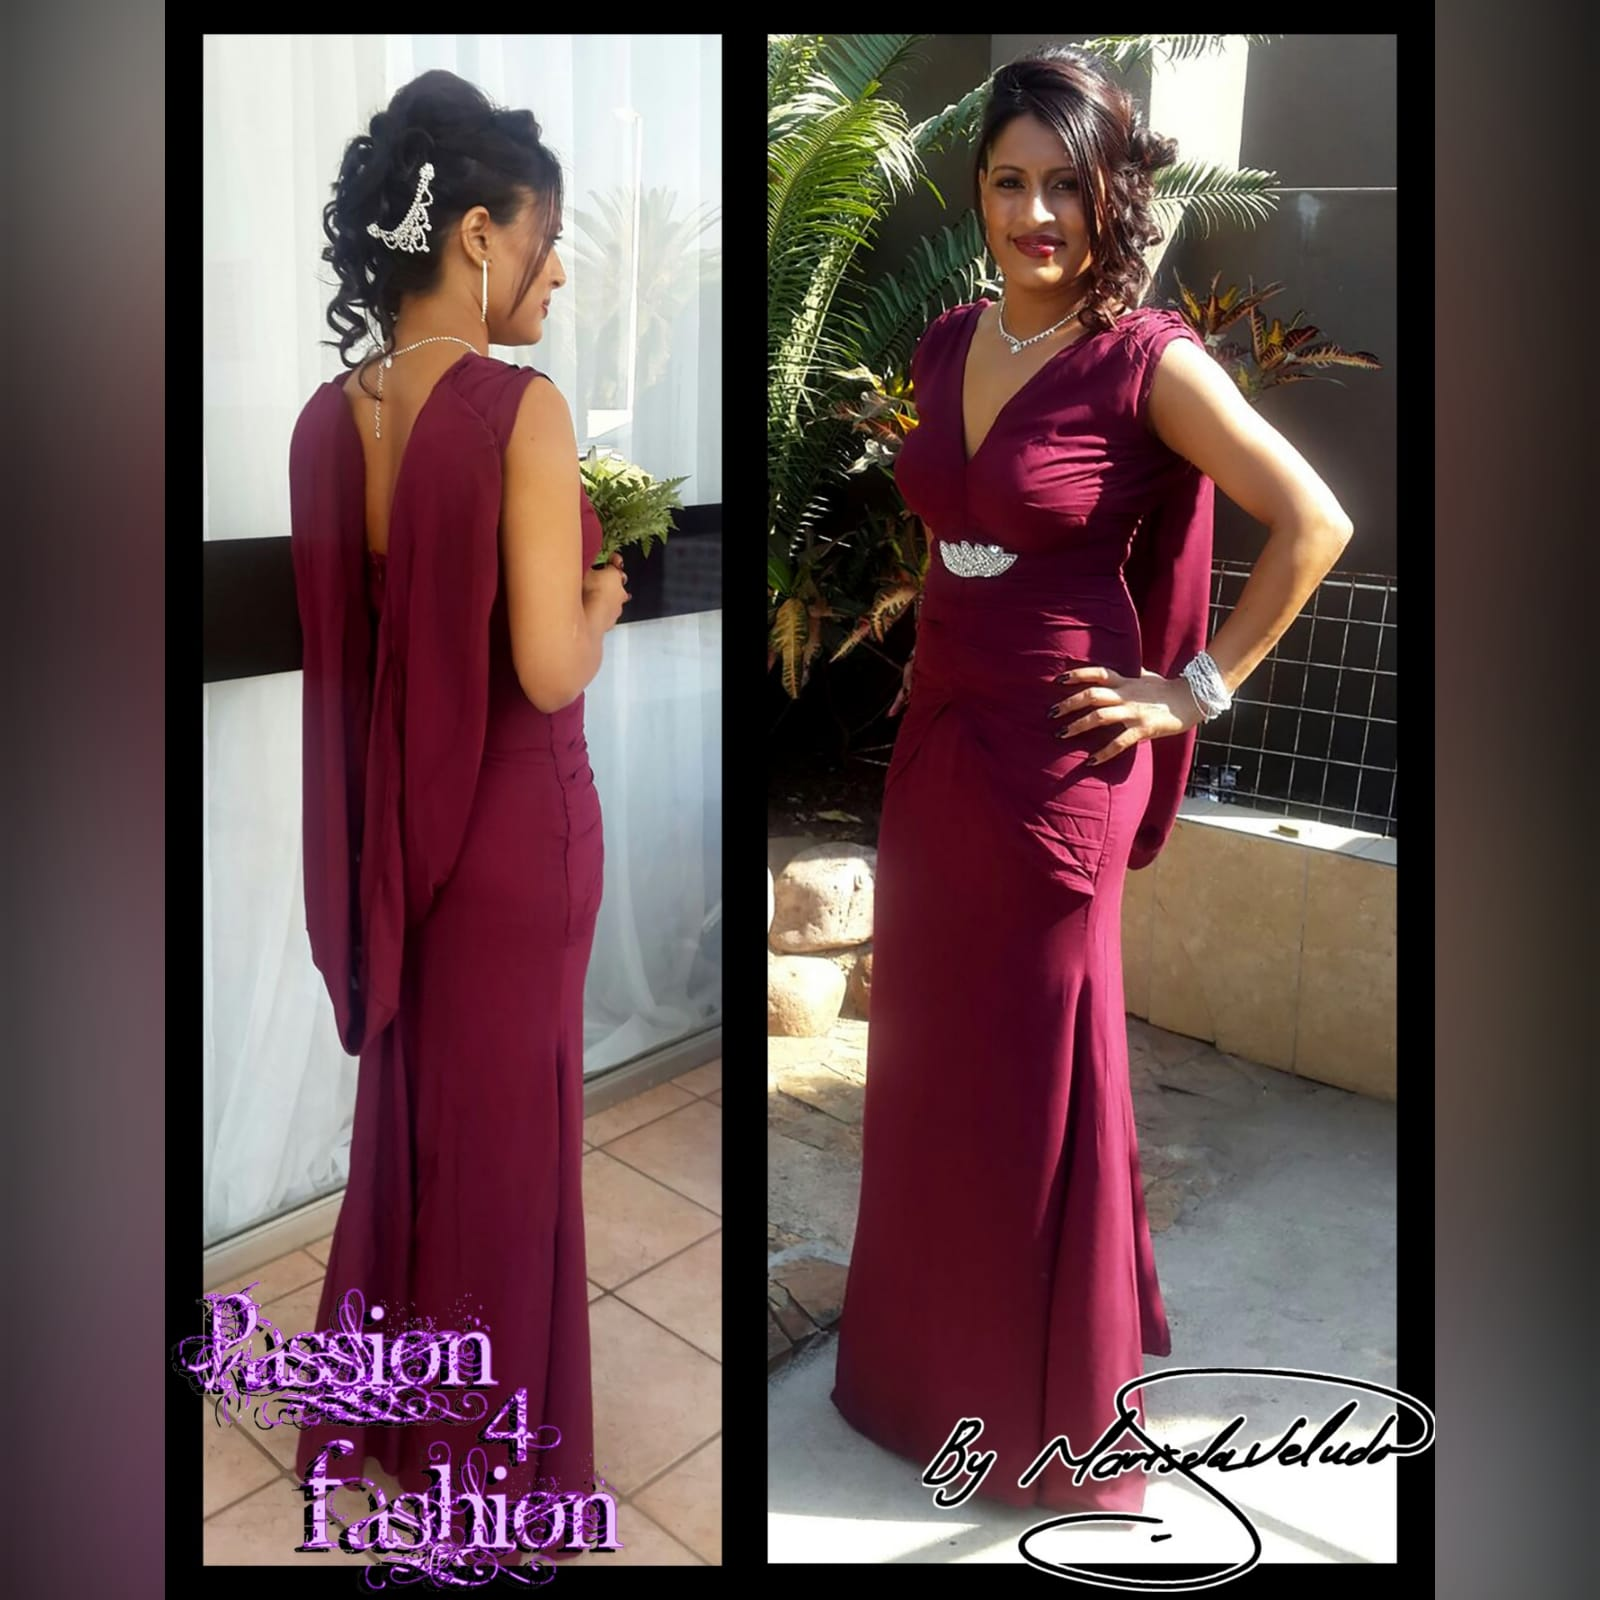 Soft mermaid maroon maid of honour dress 4 soft mermaid, maroon, maid of honour dress. With an open back. V neckline. With gathered shoulder and pleated tummy panel effect. With a detachable shoulder piece. Added silver detailing.